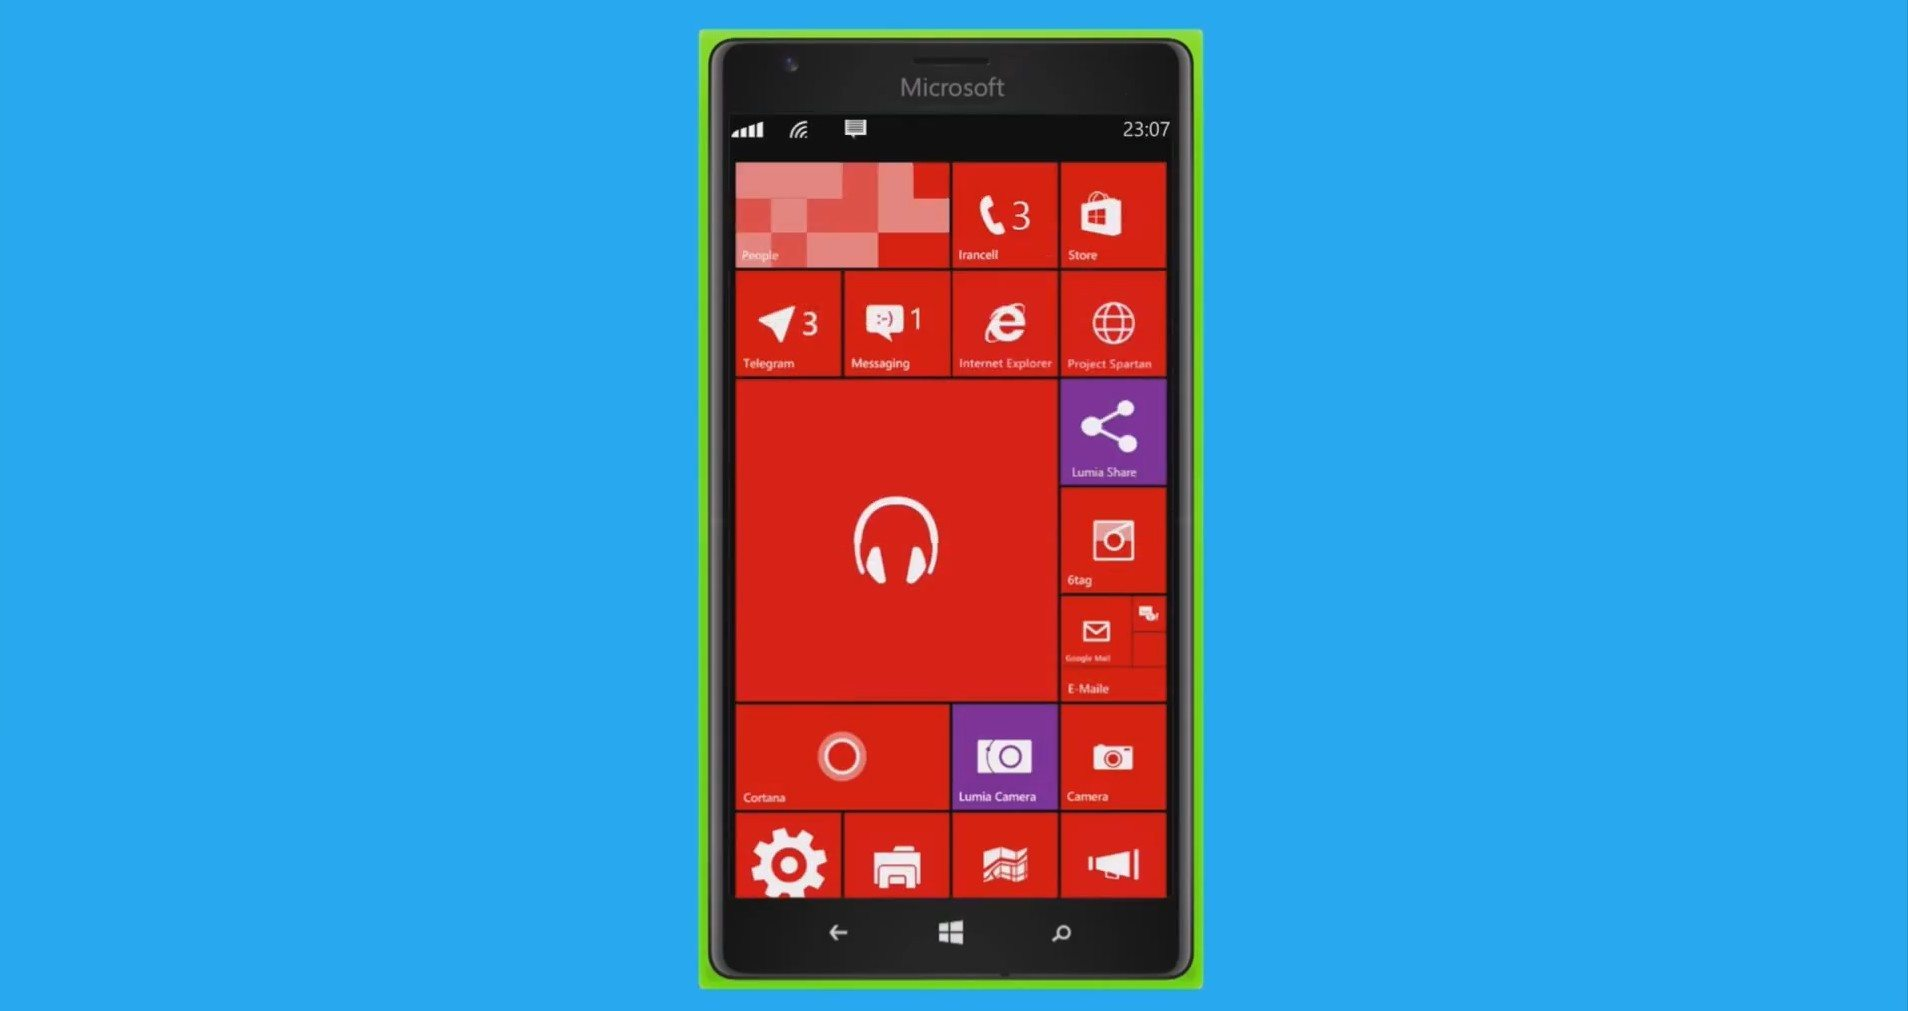 Windows-10-Mobile-Concept-Demos-Split-Screen-Support-Widgets-More-Video-480644-2